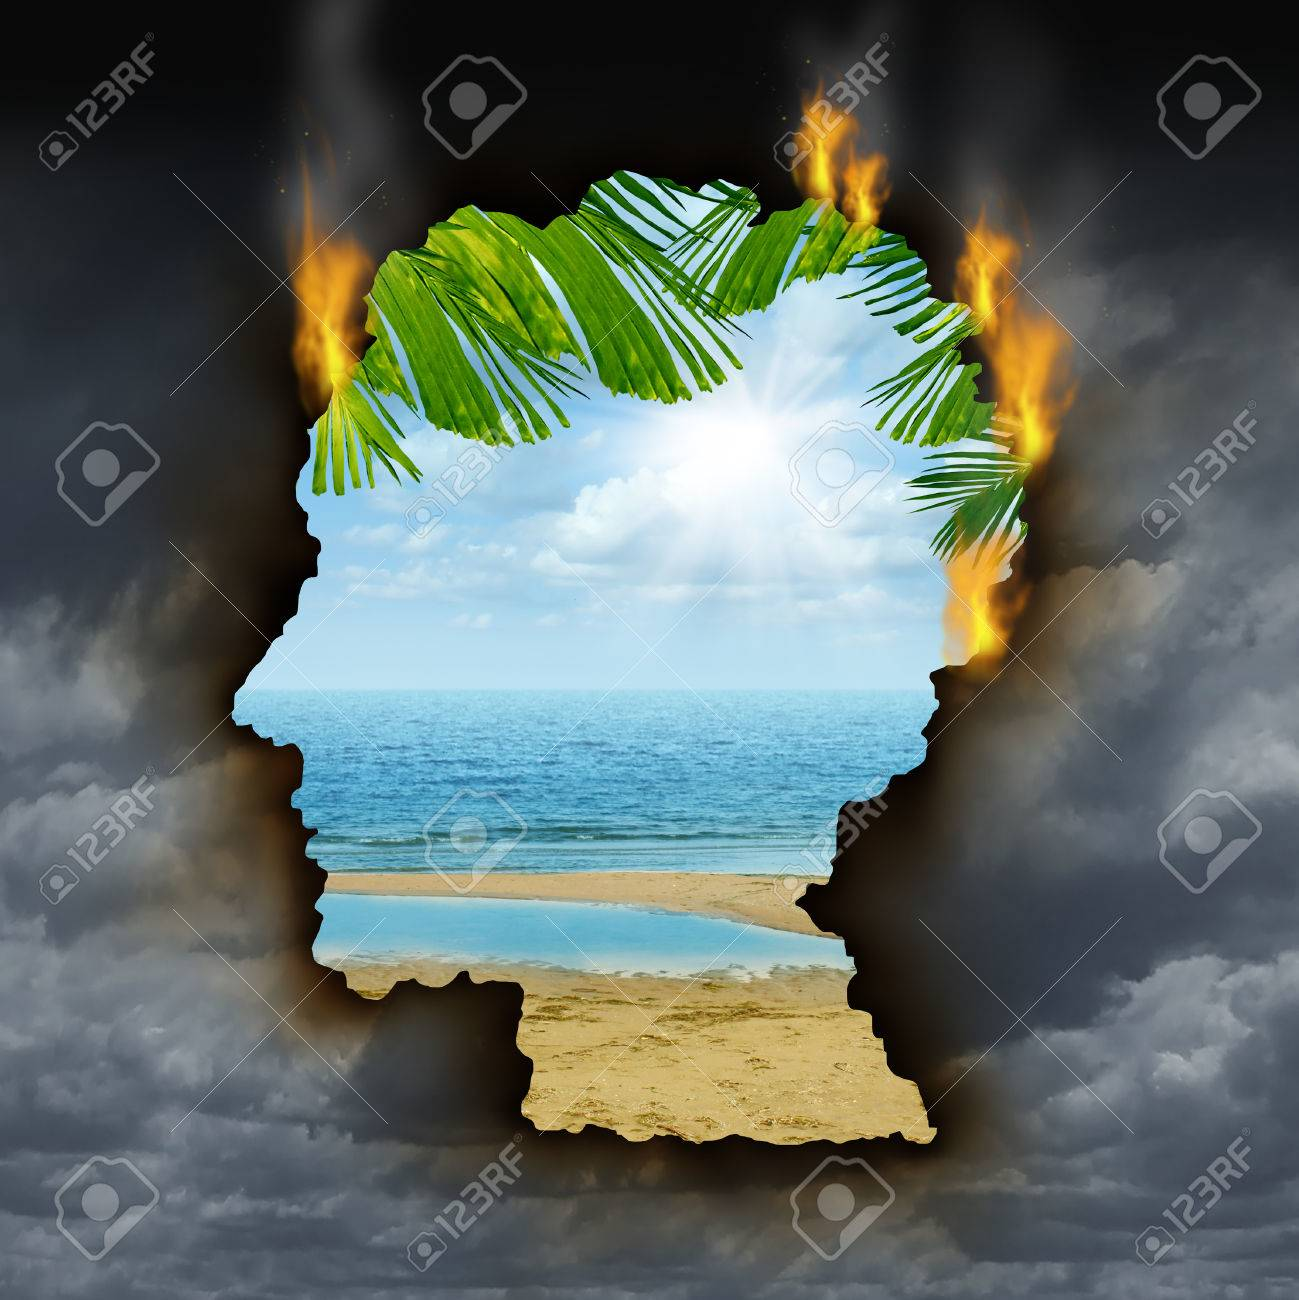 Human escape emotions and feelings concept with a dark grey storm sky burning a hole shaped as a head revealing a beautiful tropical landscape as a metaphor for brain relaxation to overcome depression stress and anxiety Stock Photo - 24809478